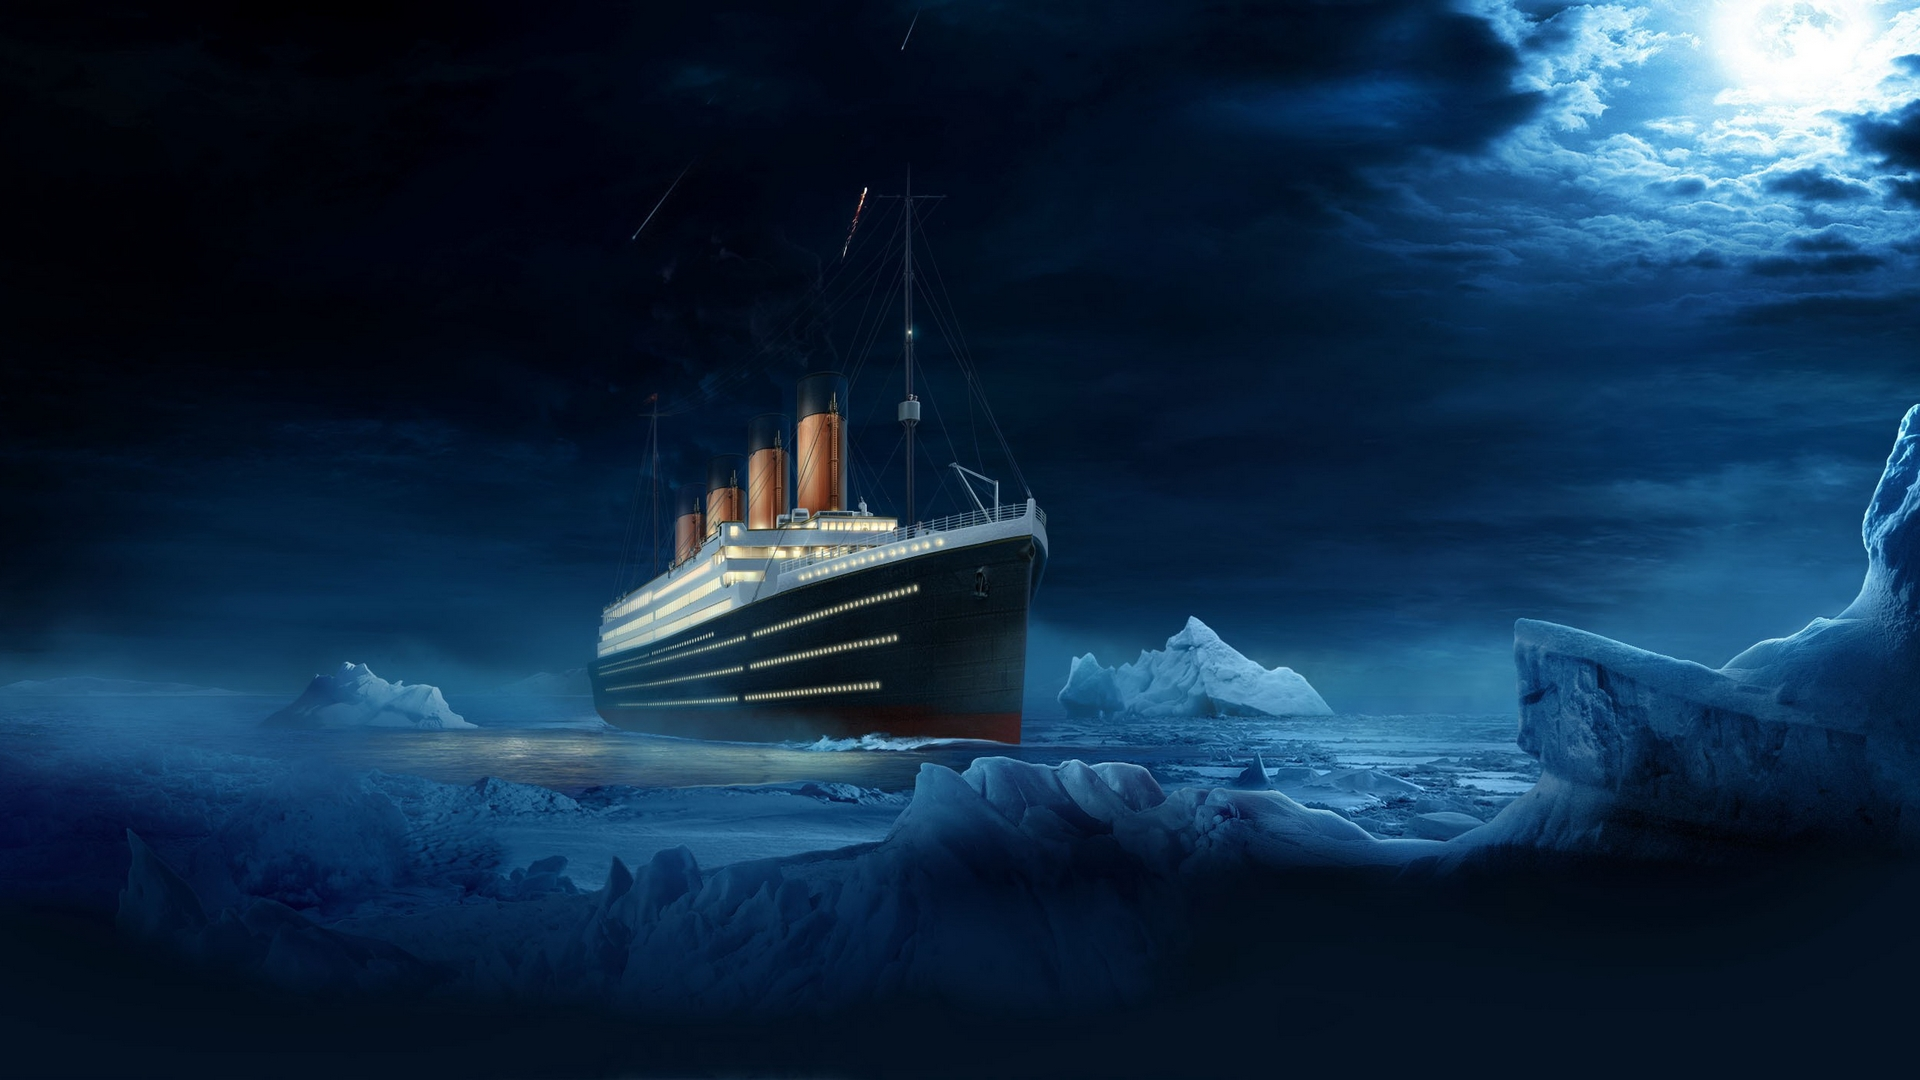 titanic ship high resolution wallpaper